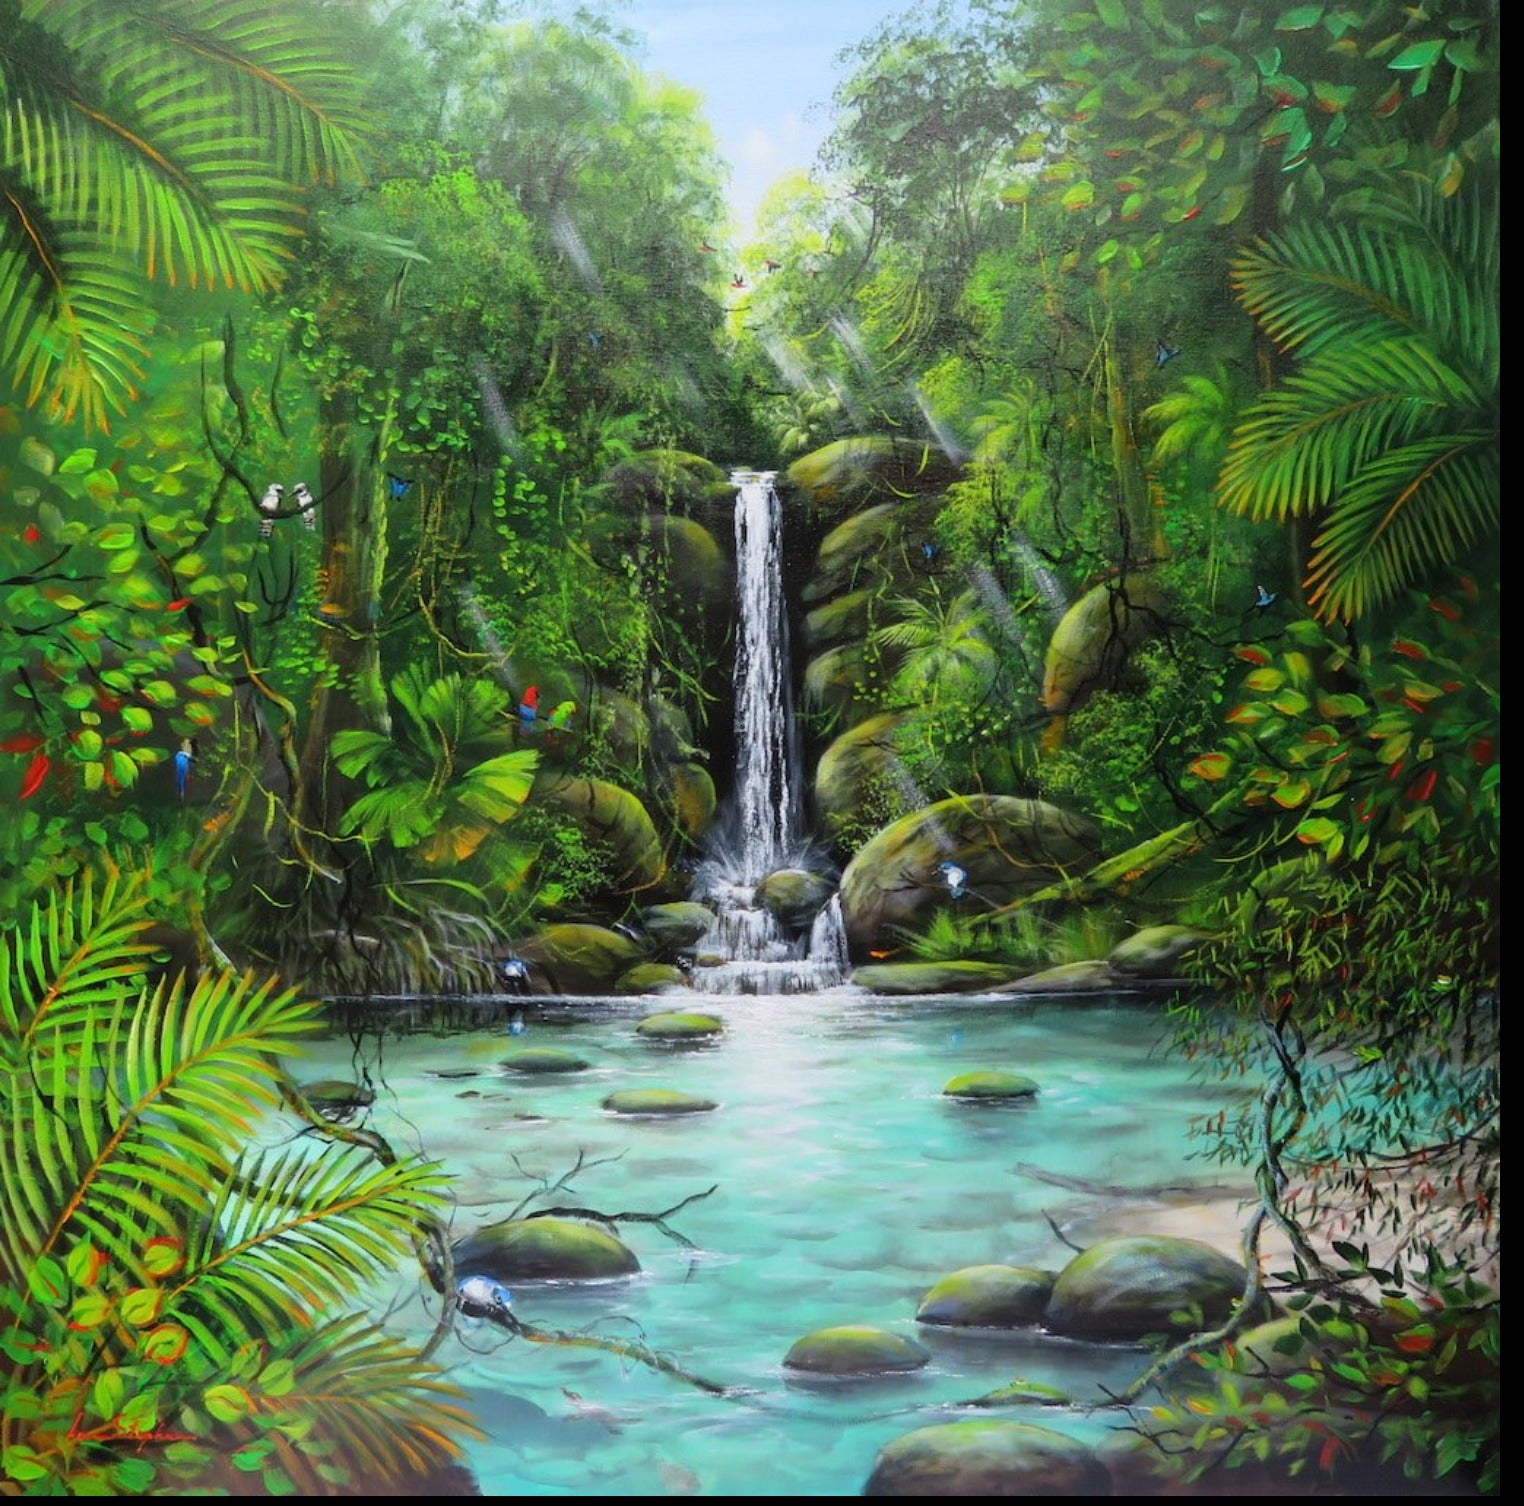 Ian Stephens Original Acrylic Painting 900 x 900mm - Kingfisher Watching the Platypus by the Waterfall - Australian Tropical Flora and Fauna